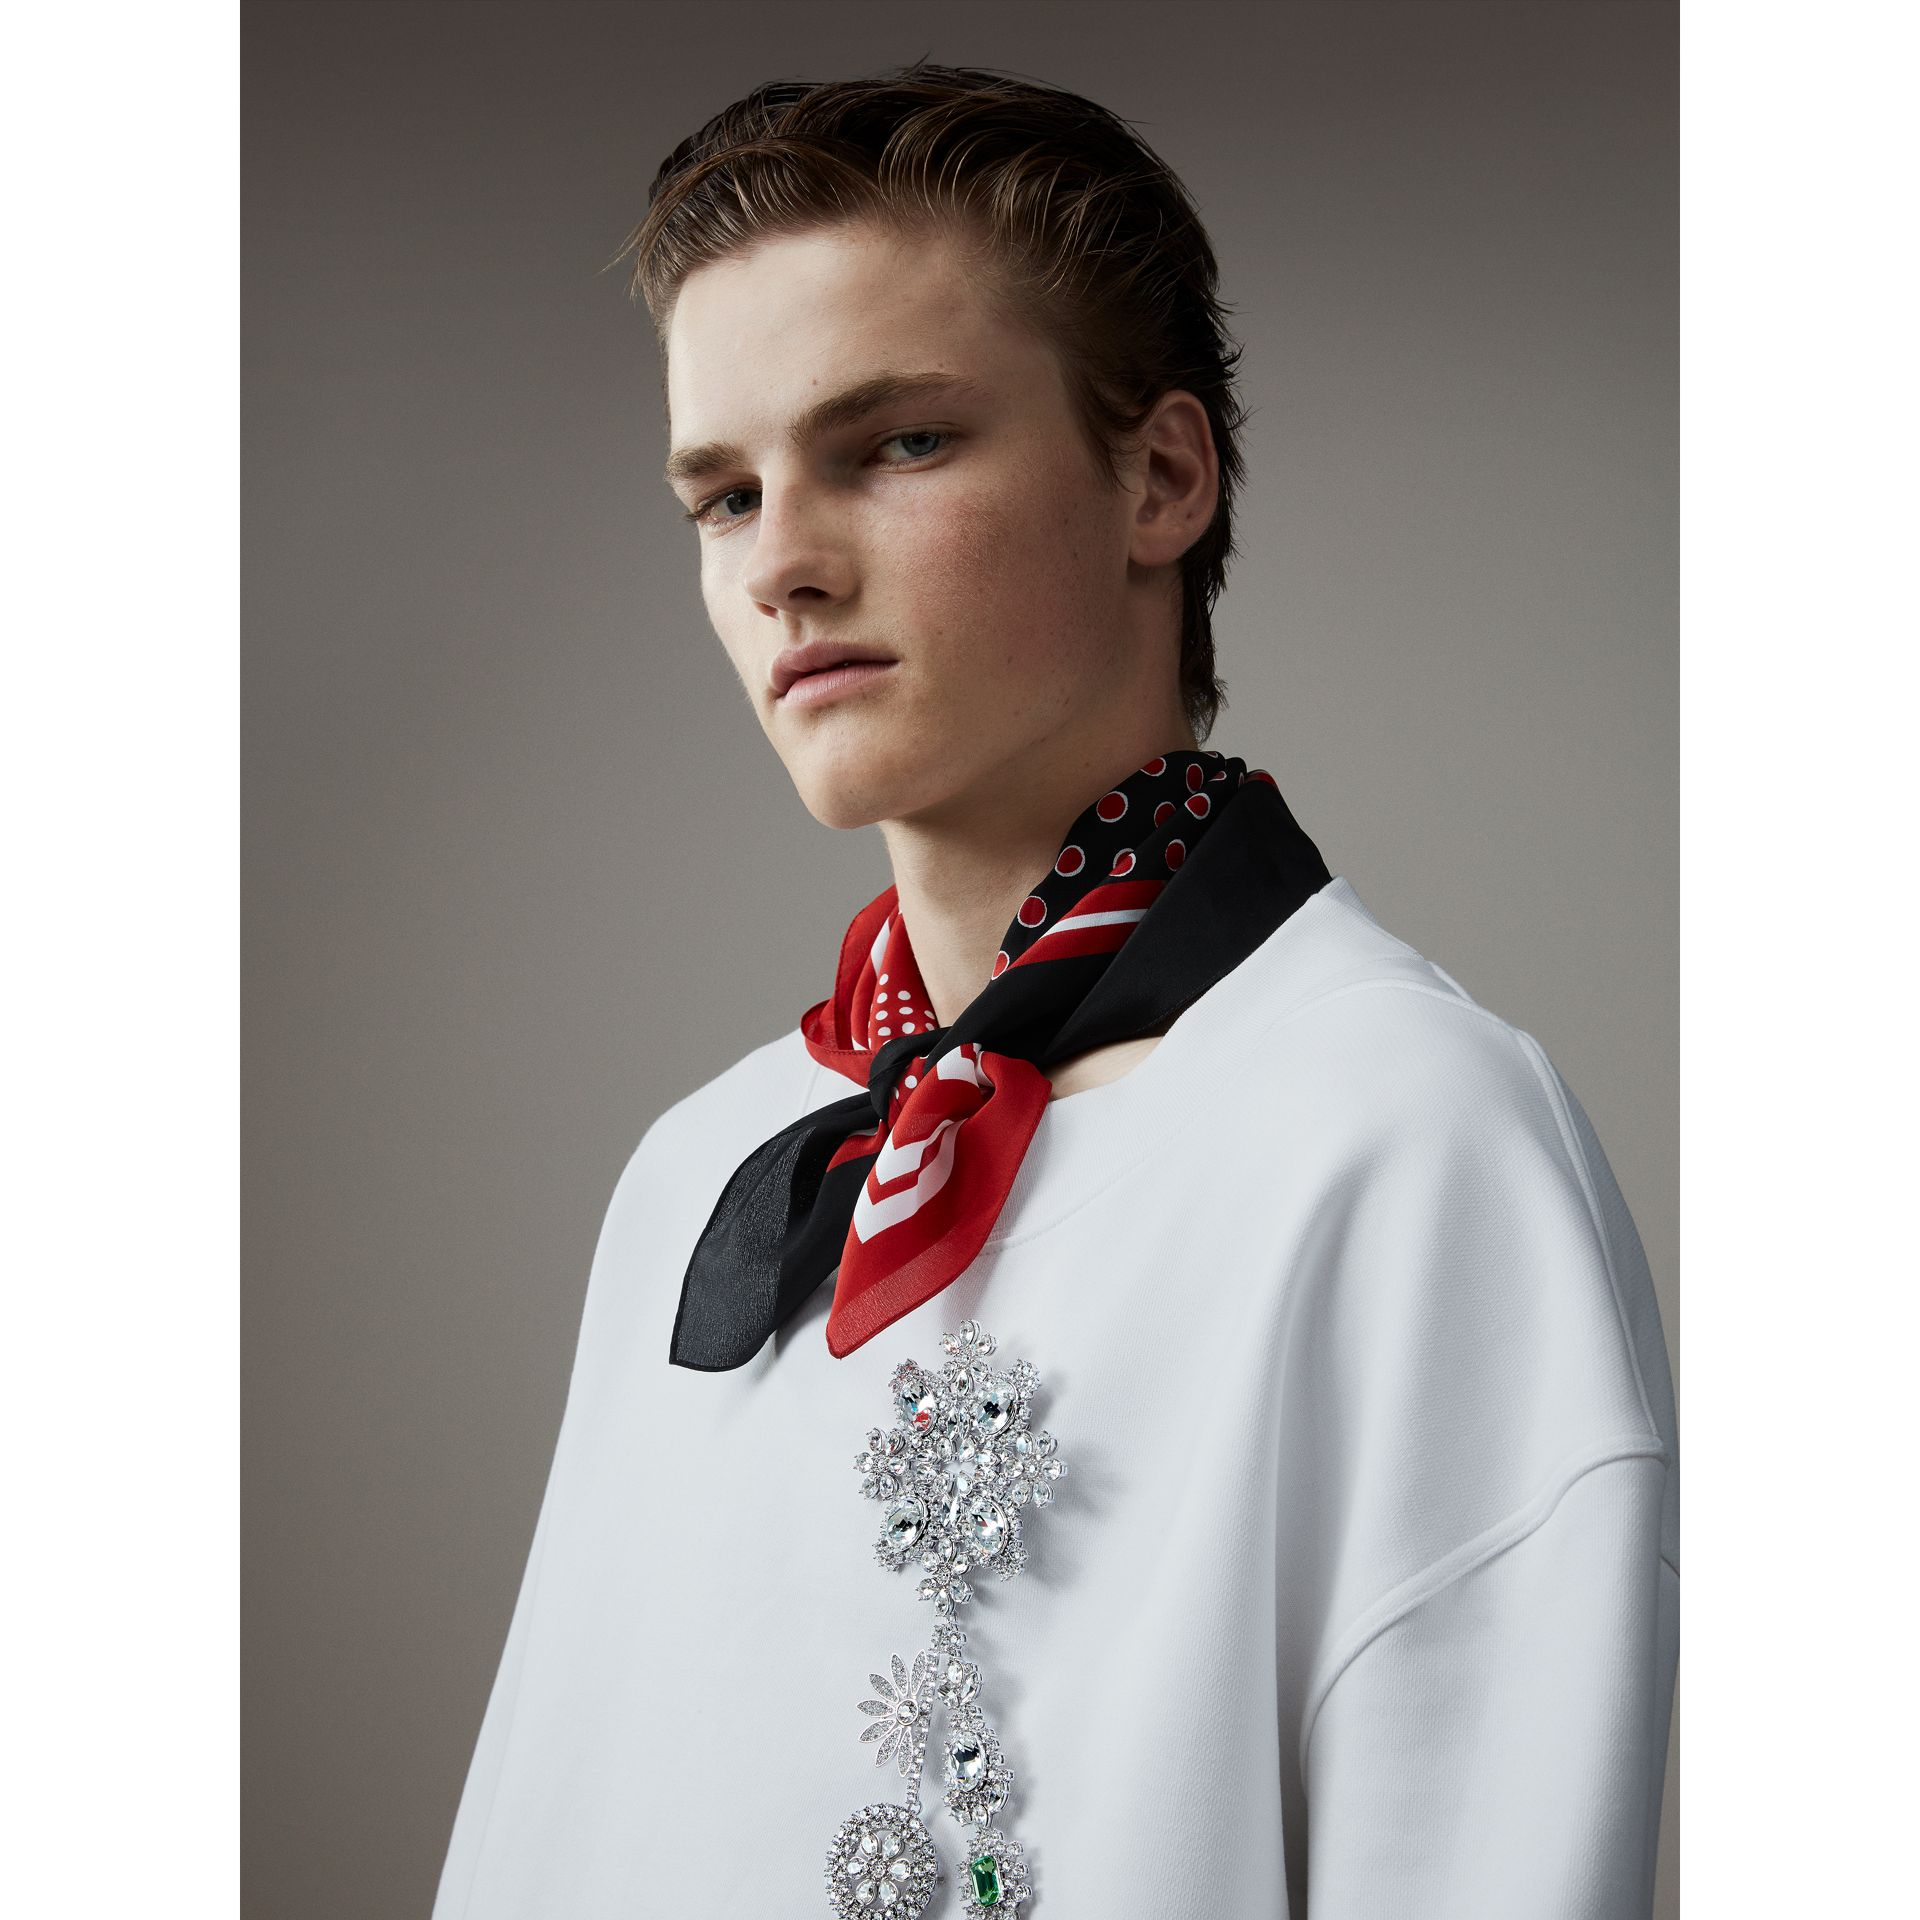 Sweat-shirt court en coton avec broche en cristal (Blanc Optique) - Homme | Burberry - photo de la galerie 6